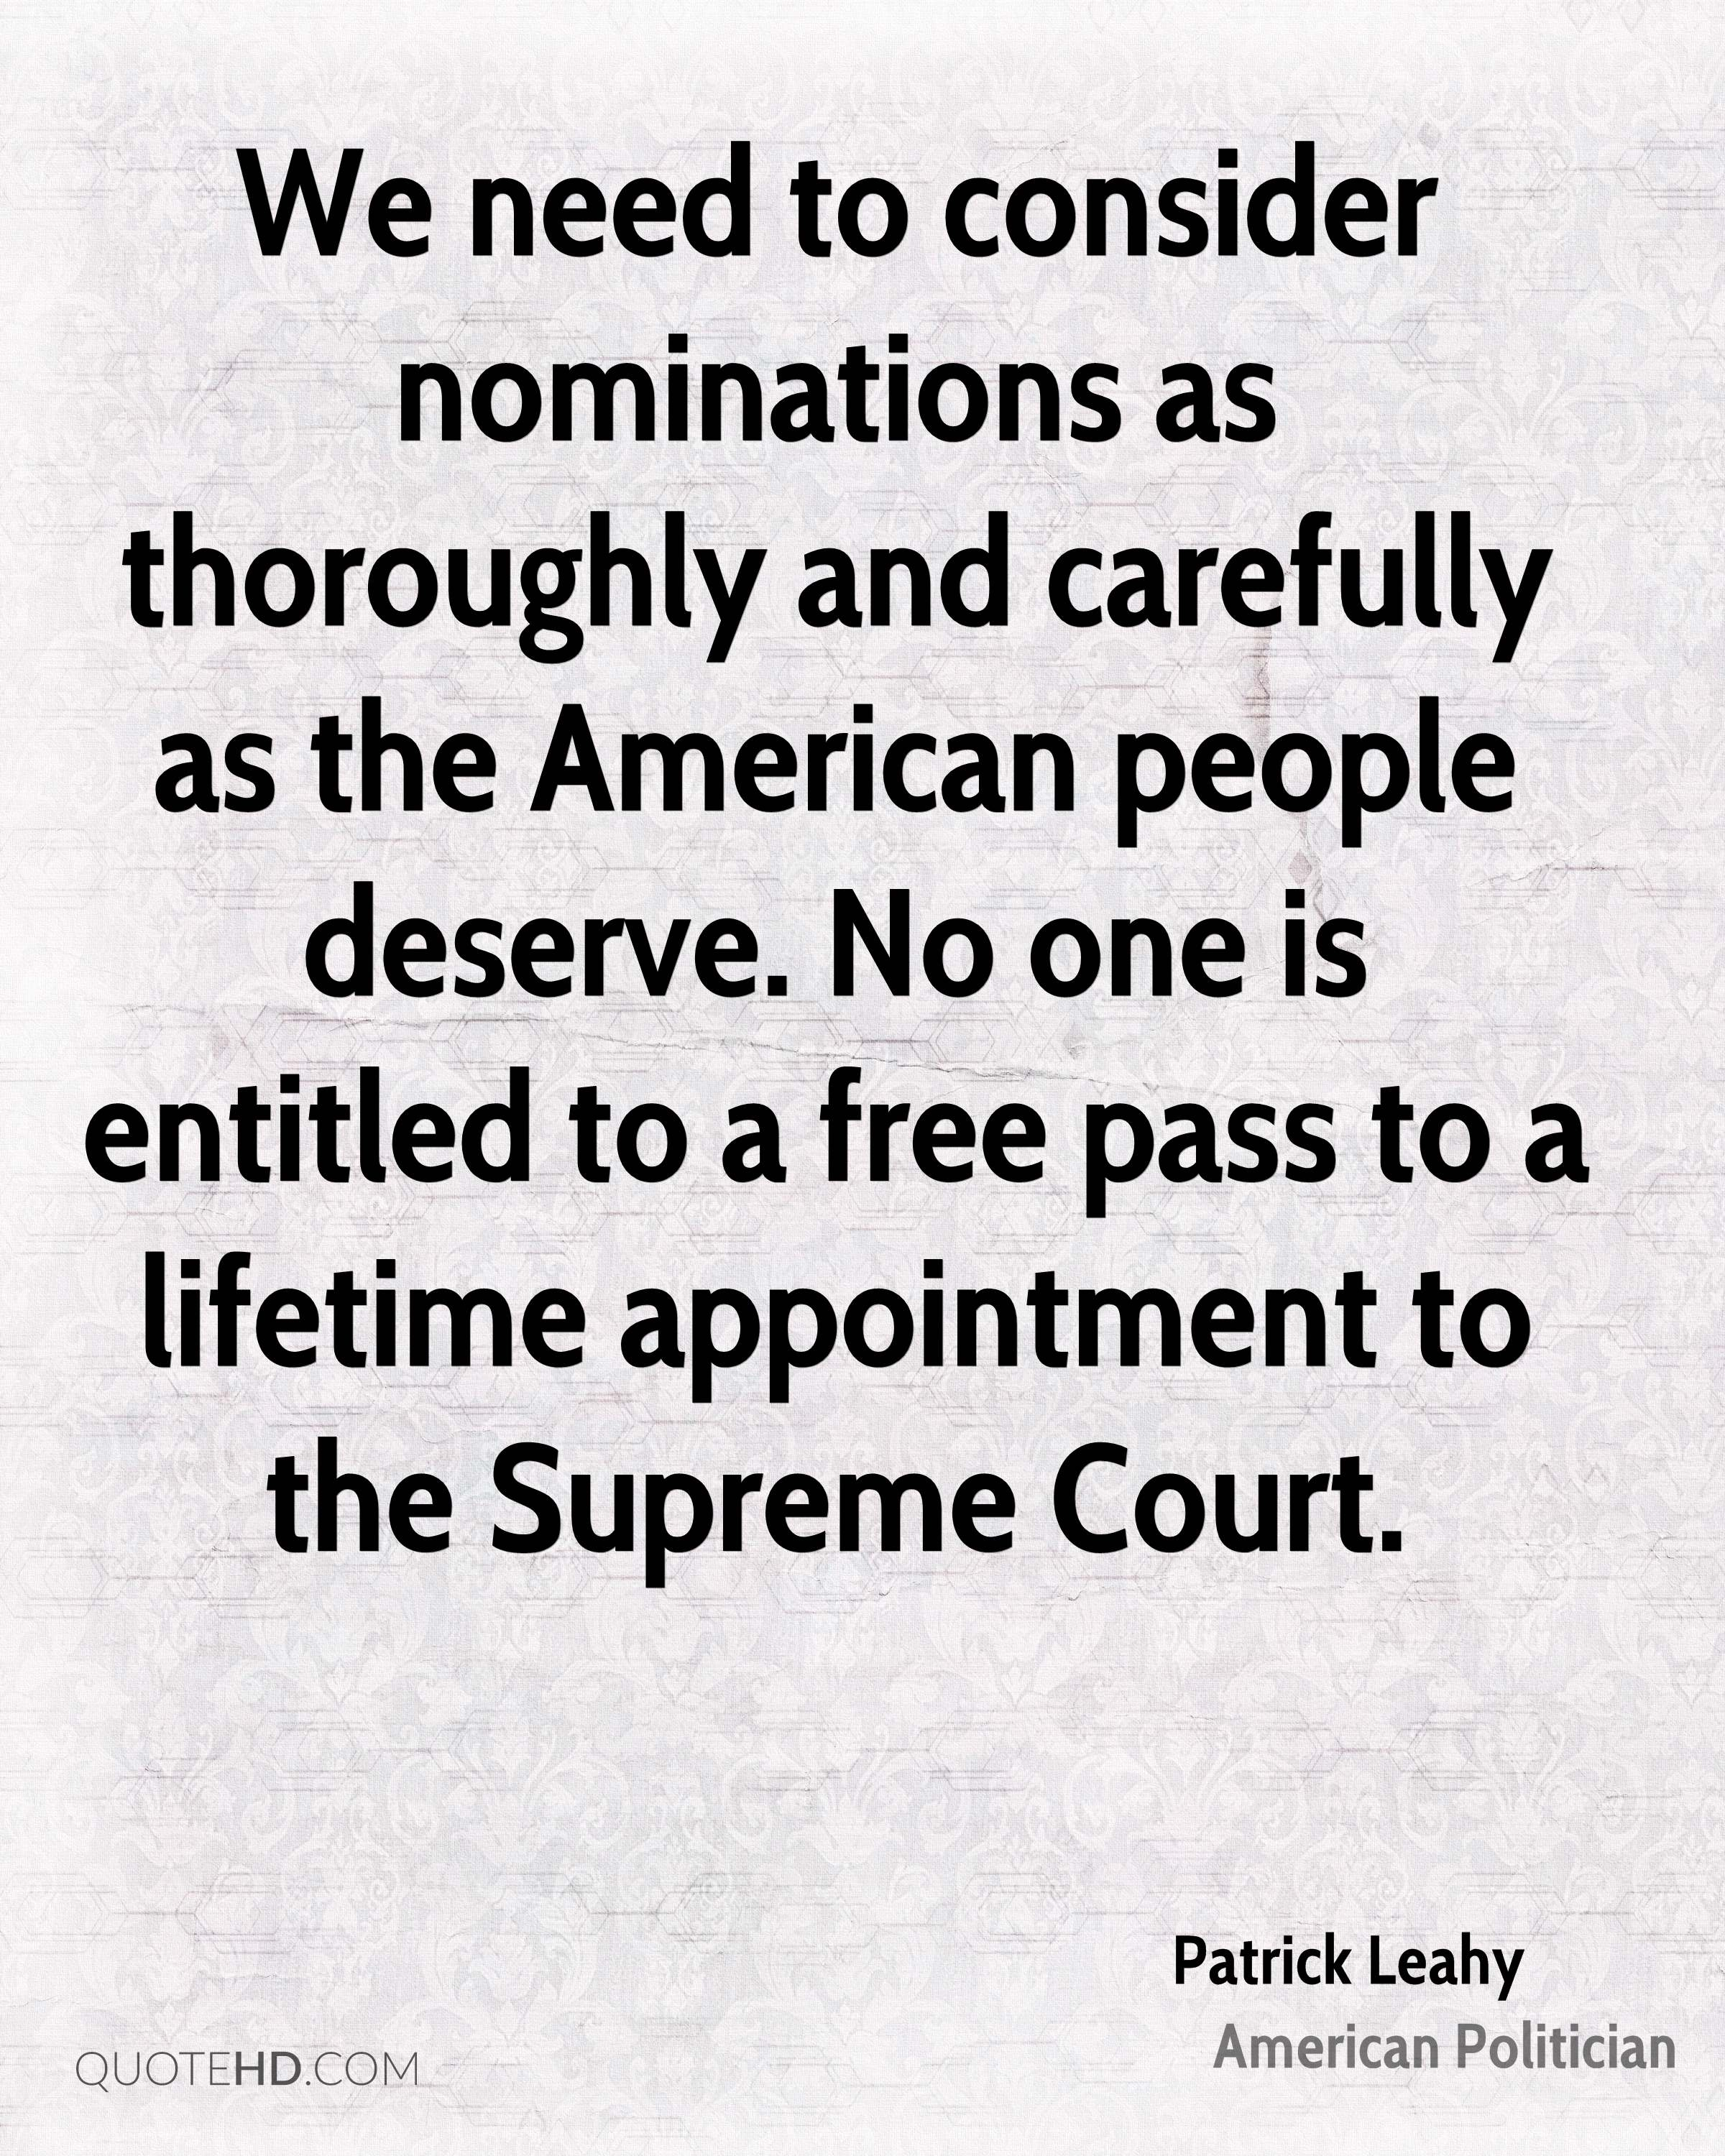 We need to consider nominations as thoroughly and carefully as the American people deserve. No one is entitled to a free pass to a lifetime appointment to the Supreme Court.